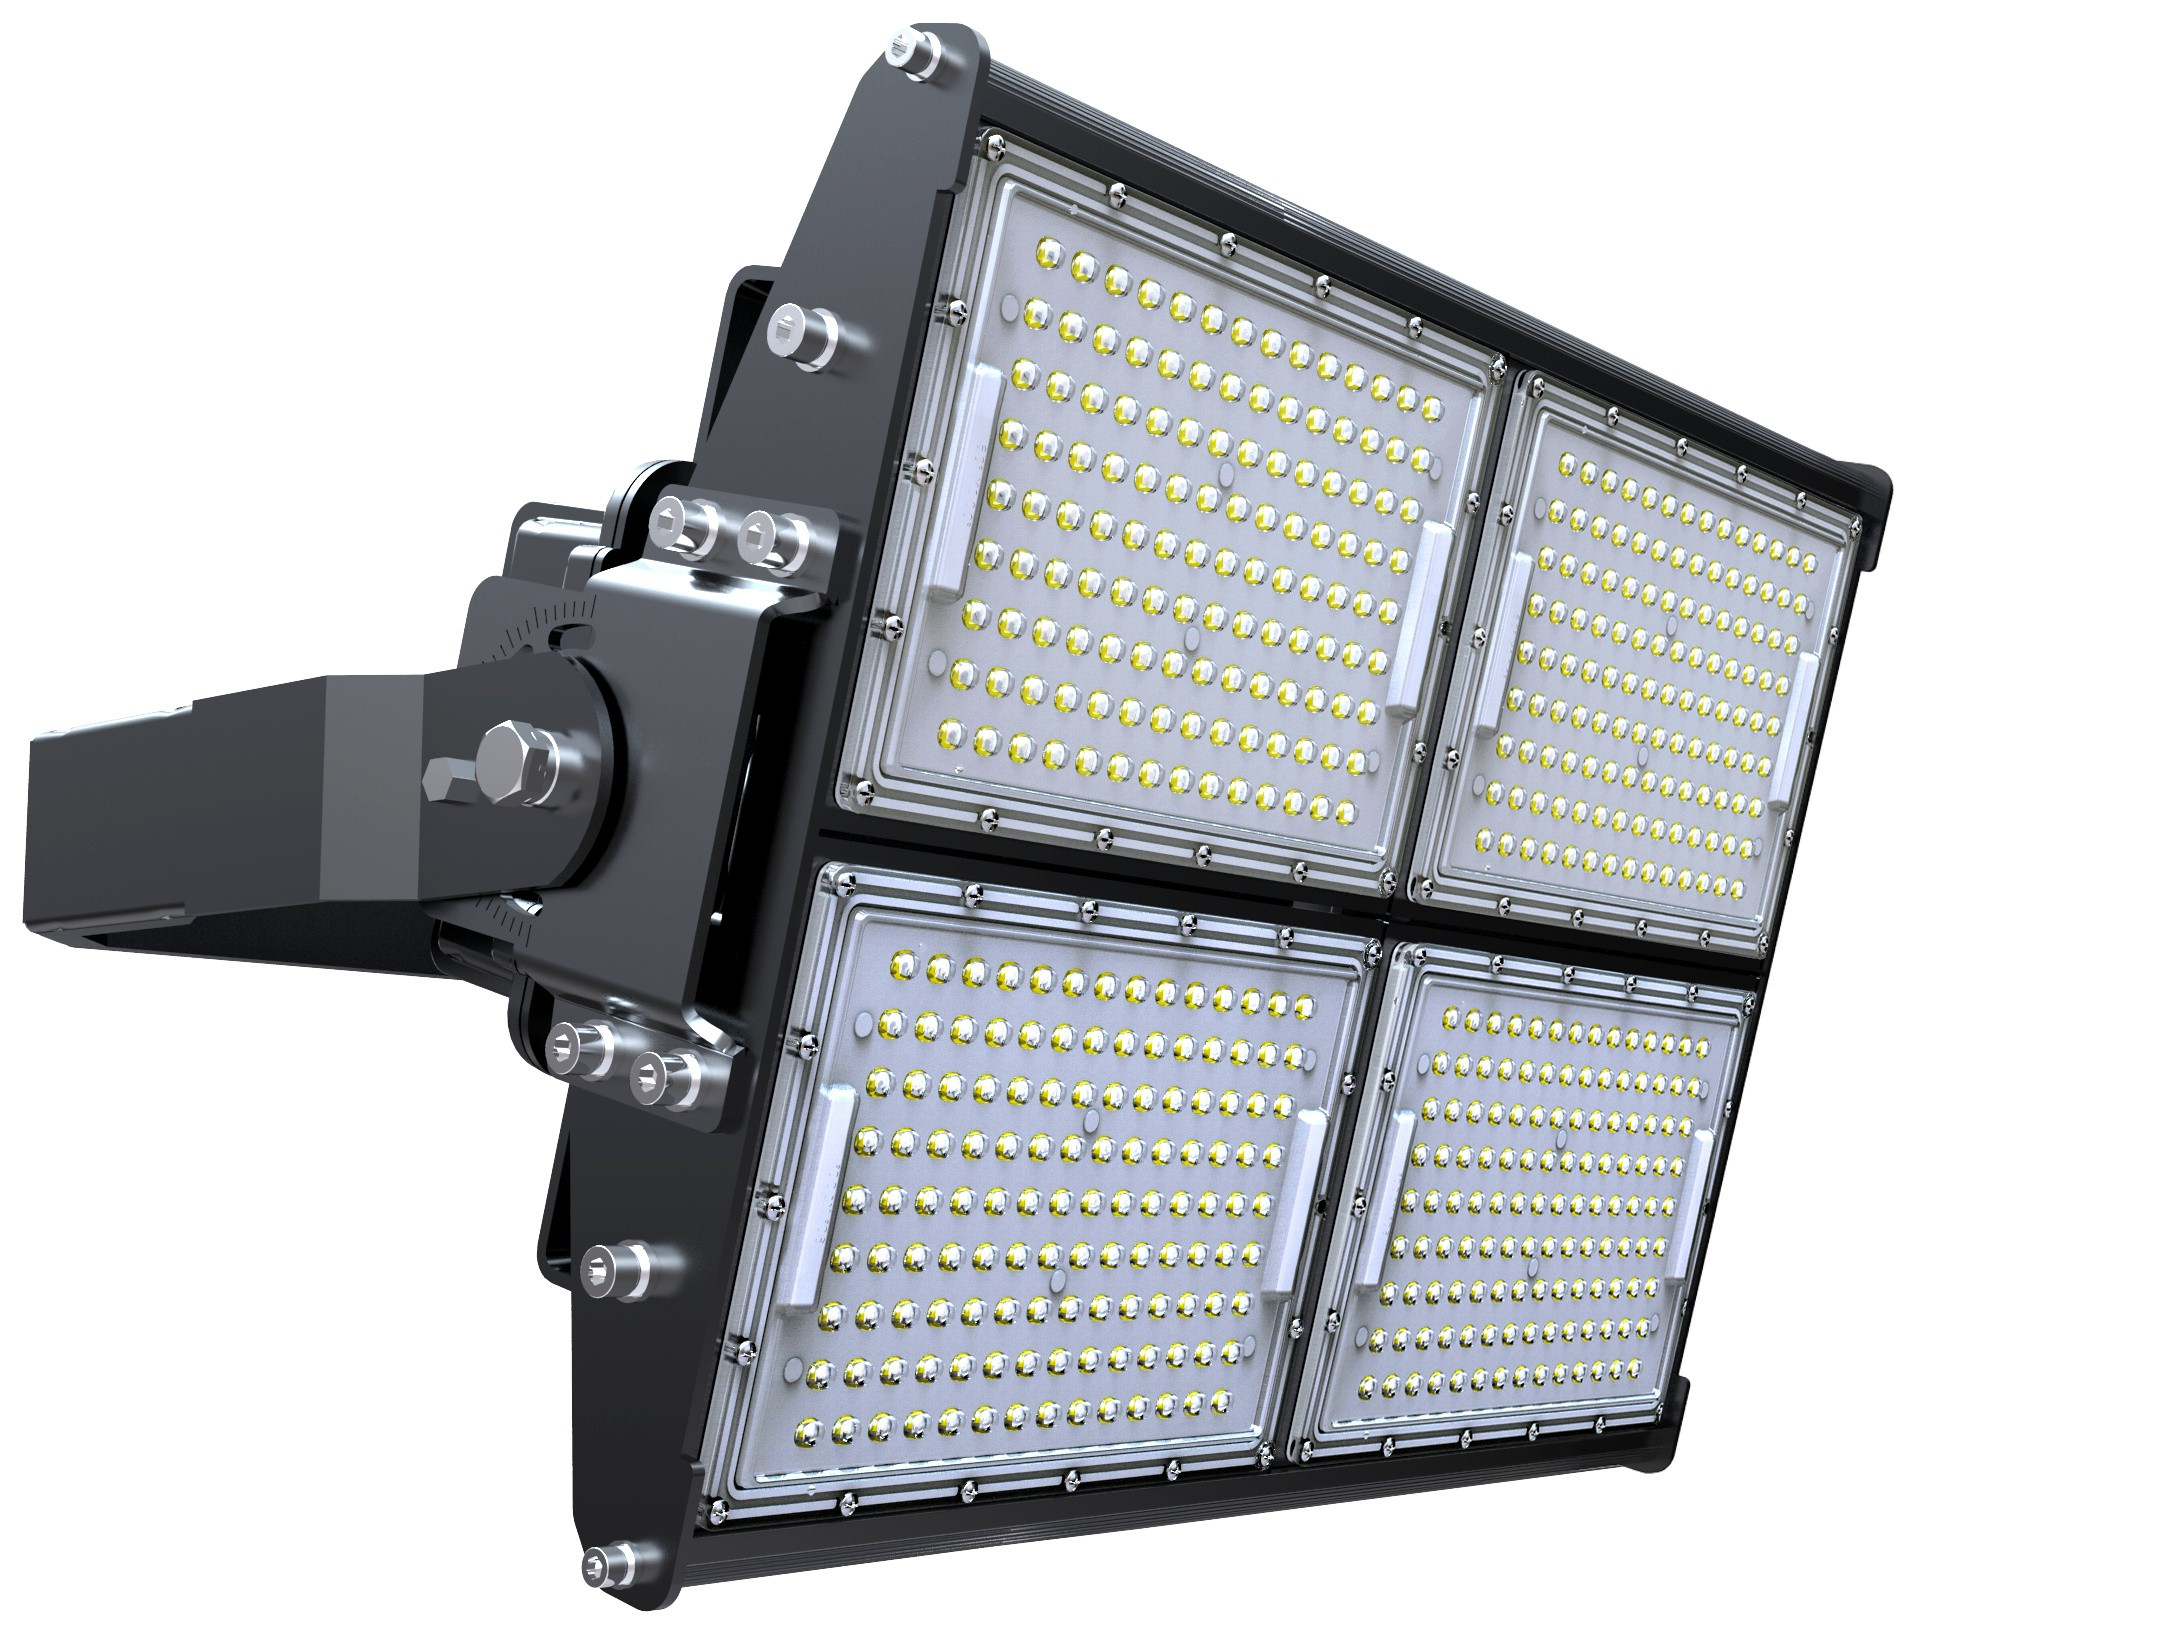 LED STADIUM FLOOD LIGHT - 480W - 62,400 LUMENS - 5700K